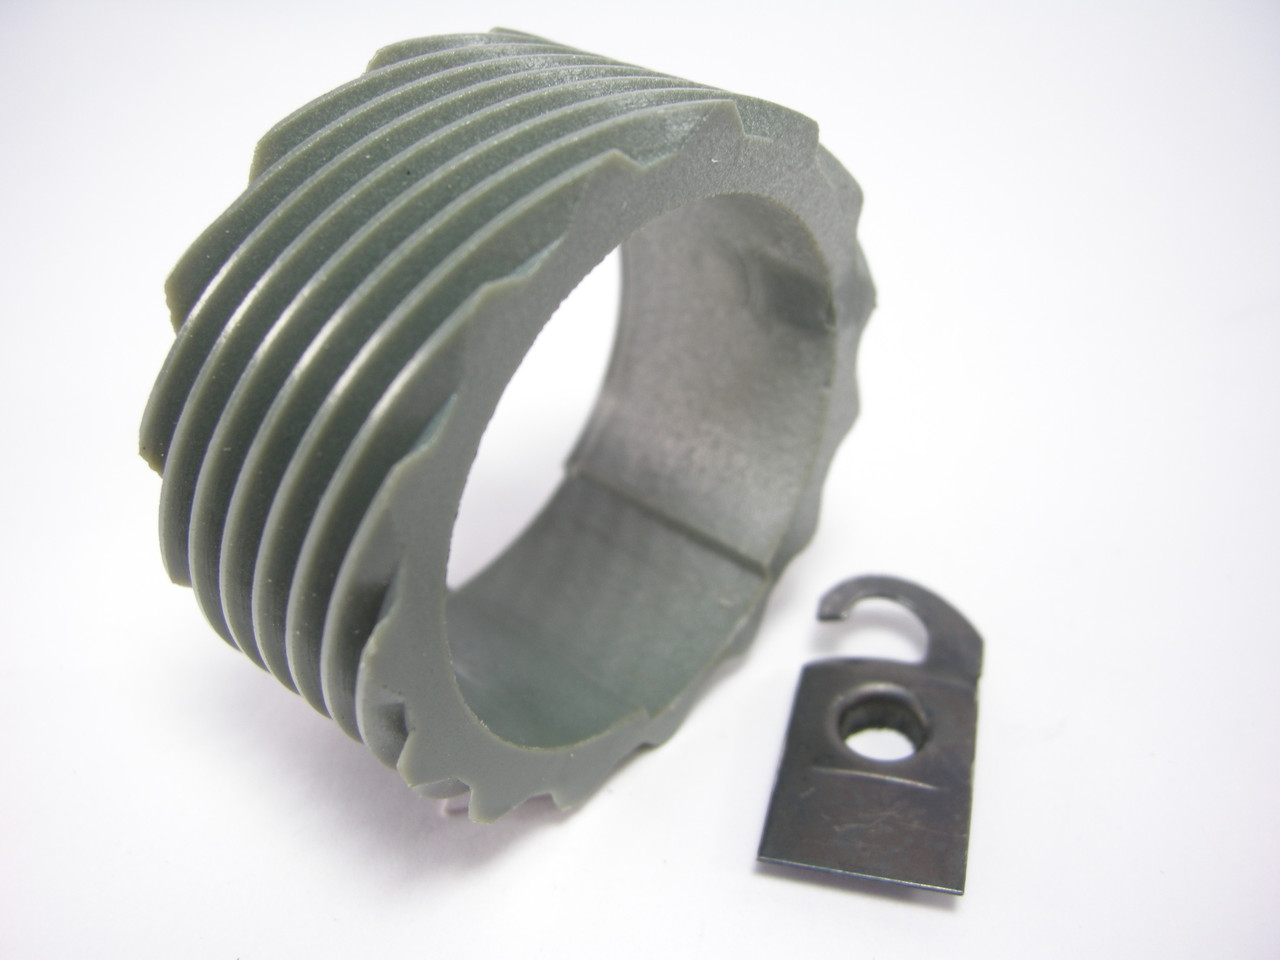 15 tooth drive gear with drive gear clip Th400 Turbo 400